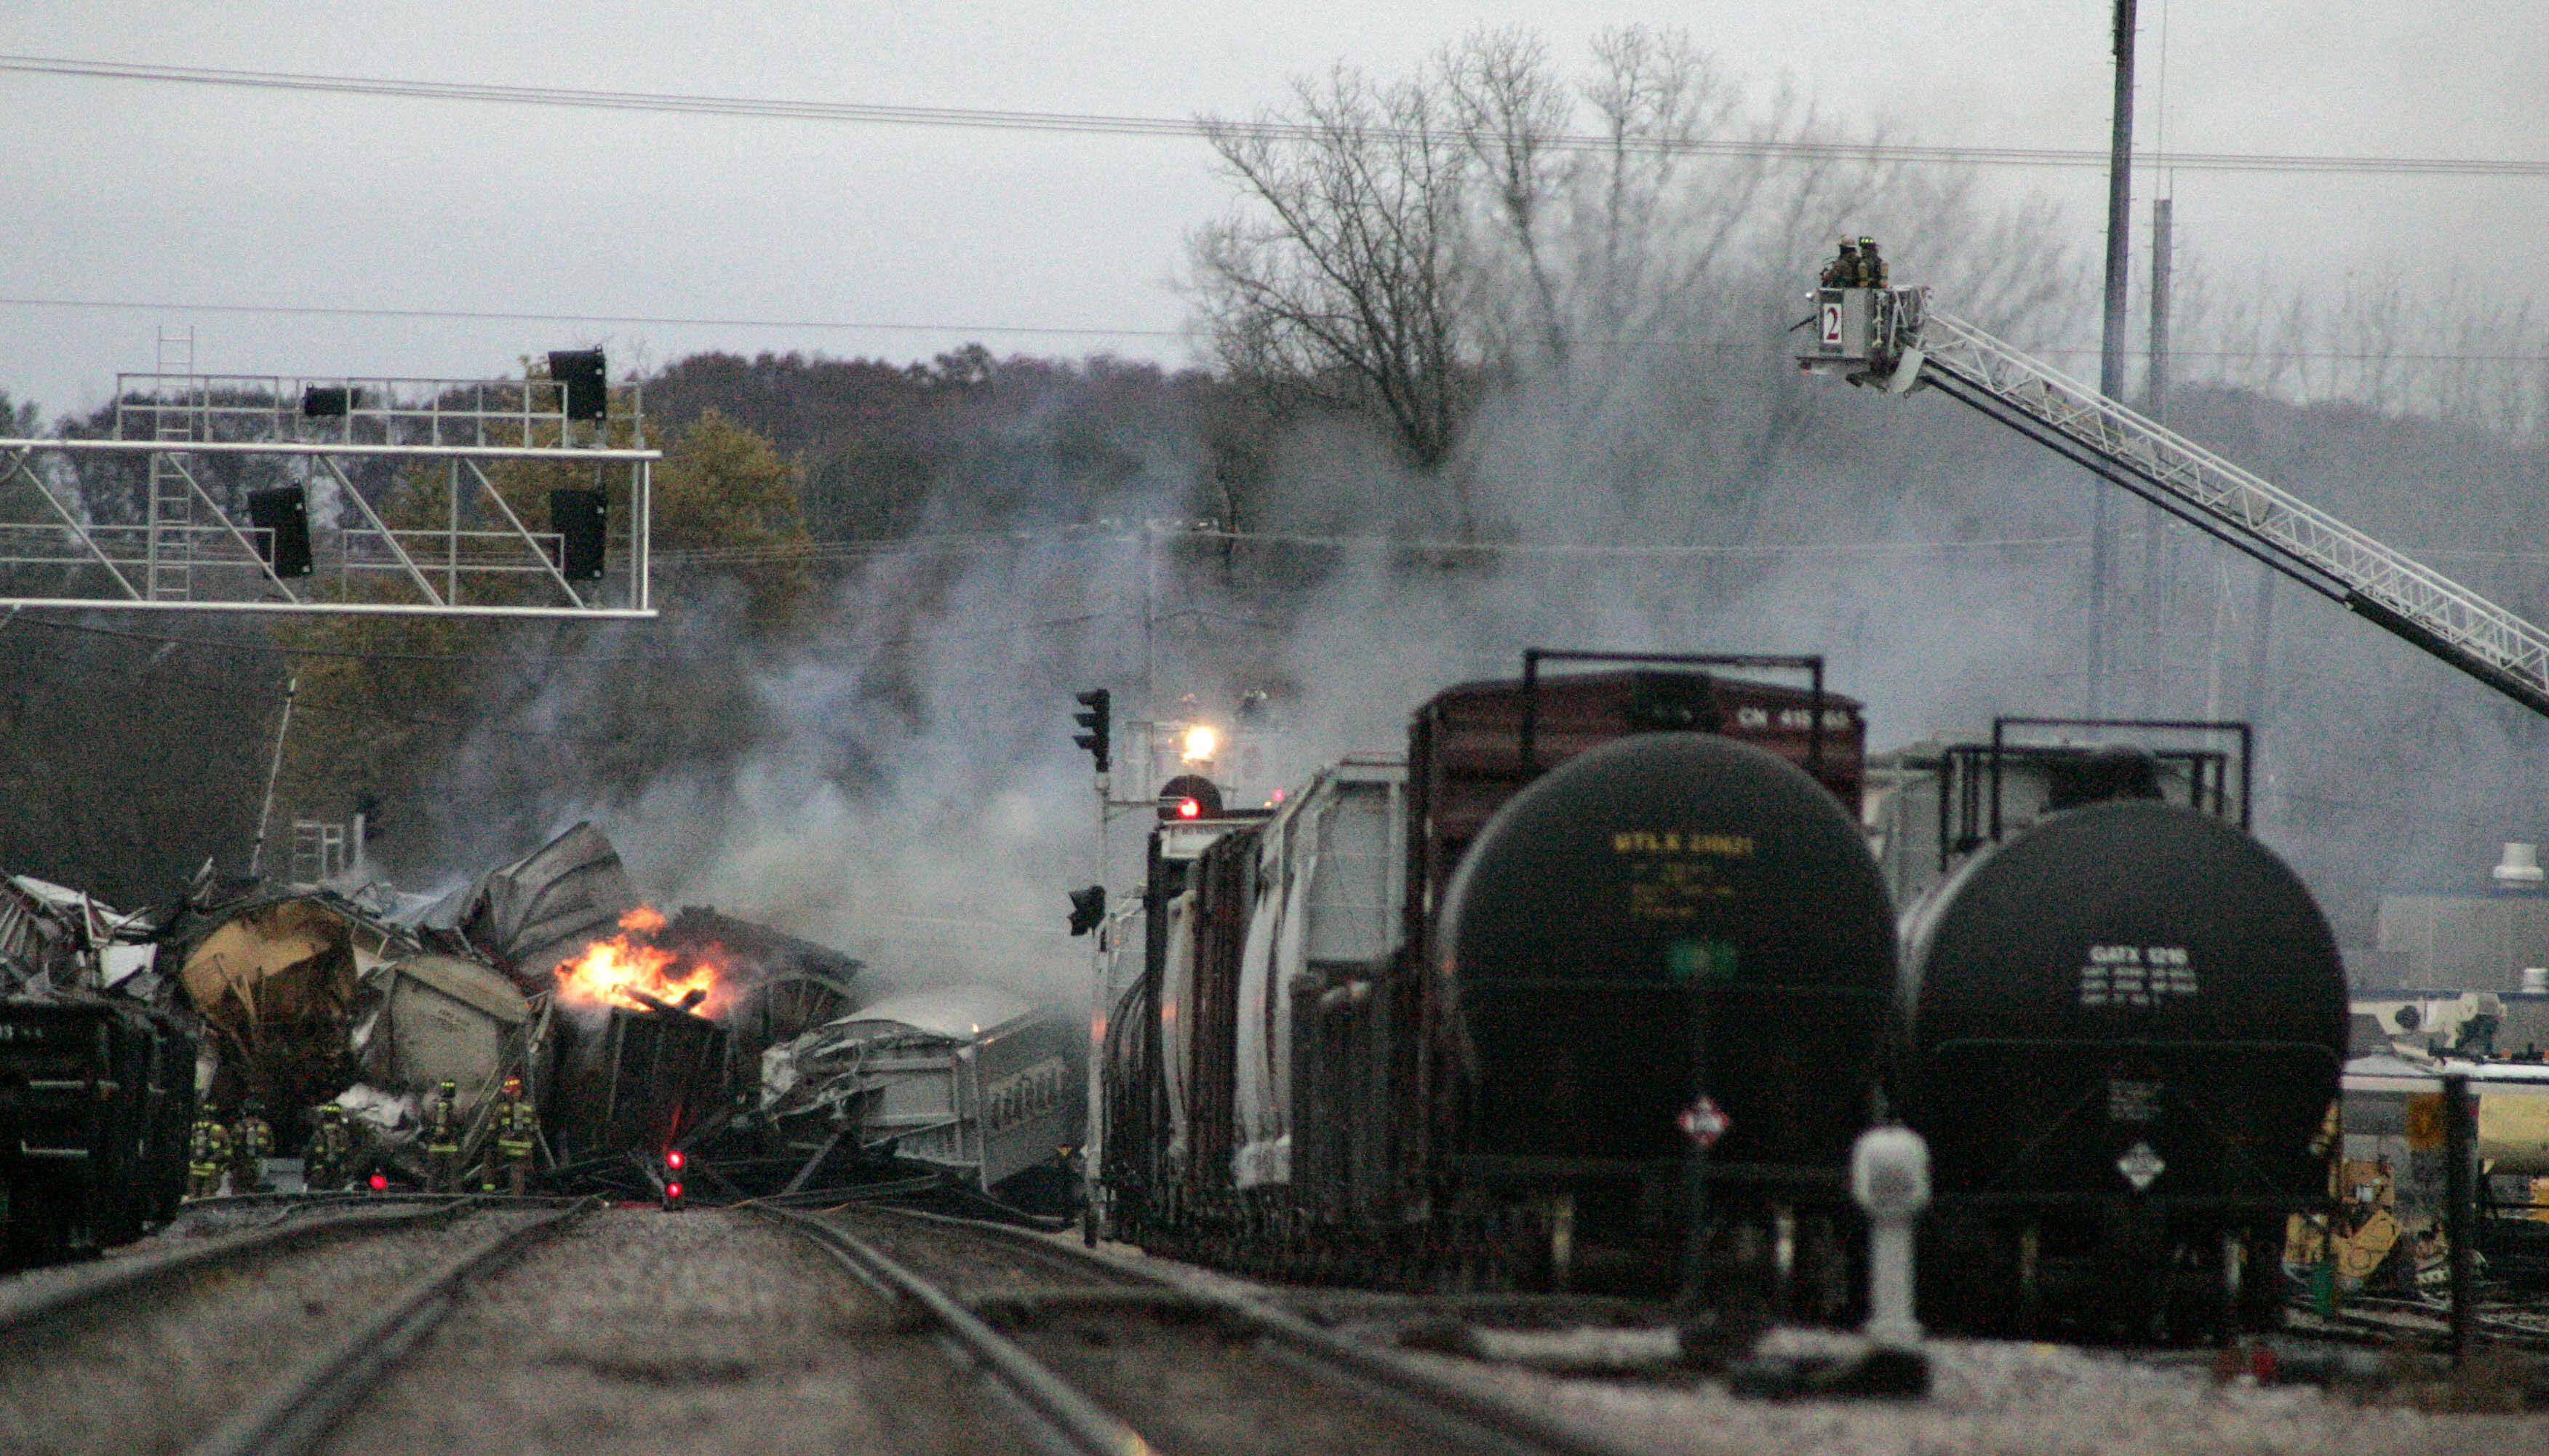 Smoke rises from a train derailment involving eight cars that spans the Elgin and Bartlett borders Thursday, November 3, 2011. The call was escalated to a MABAS Division 2 box alarm and caused major traffic delays in the area as well as bussing concerns for students at the U-46 School district.